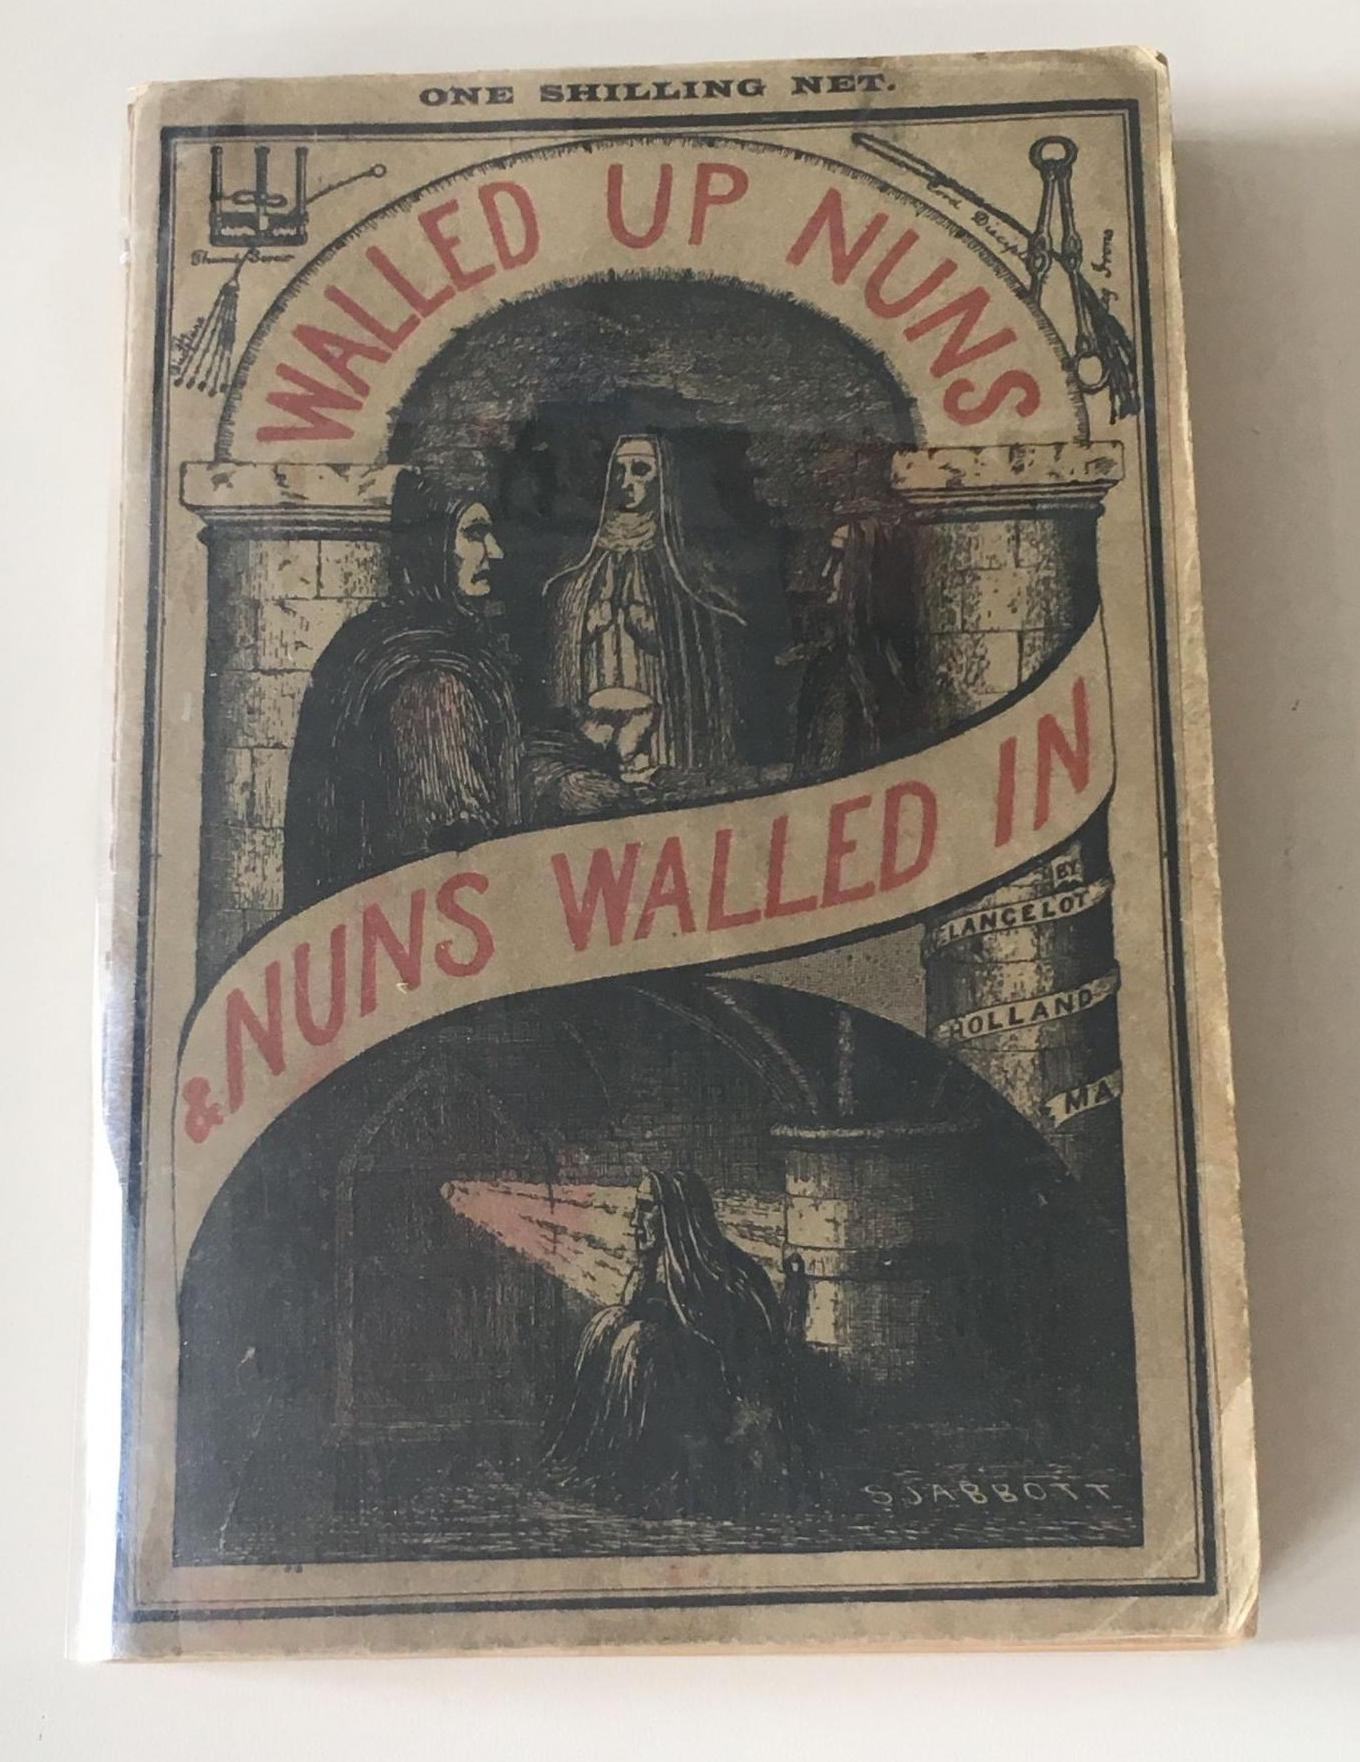 Walled up Nuns book